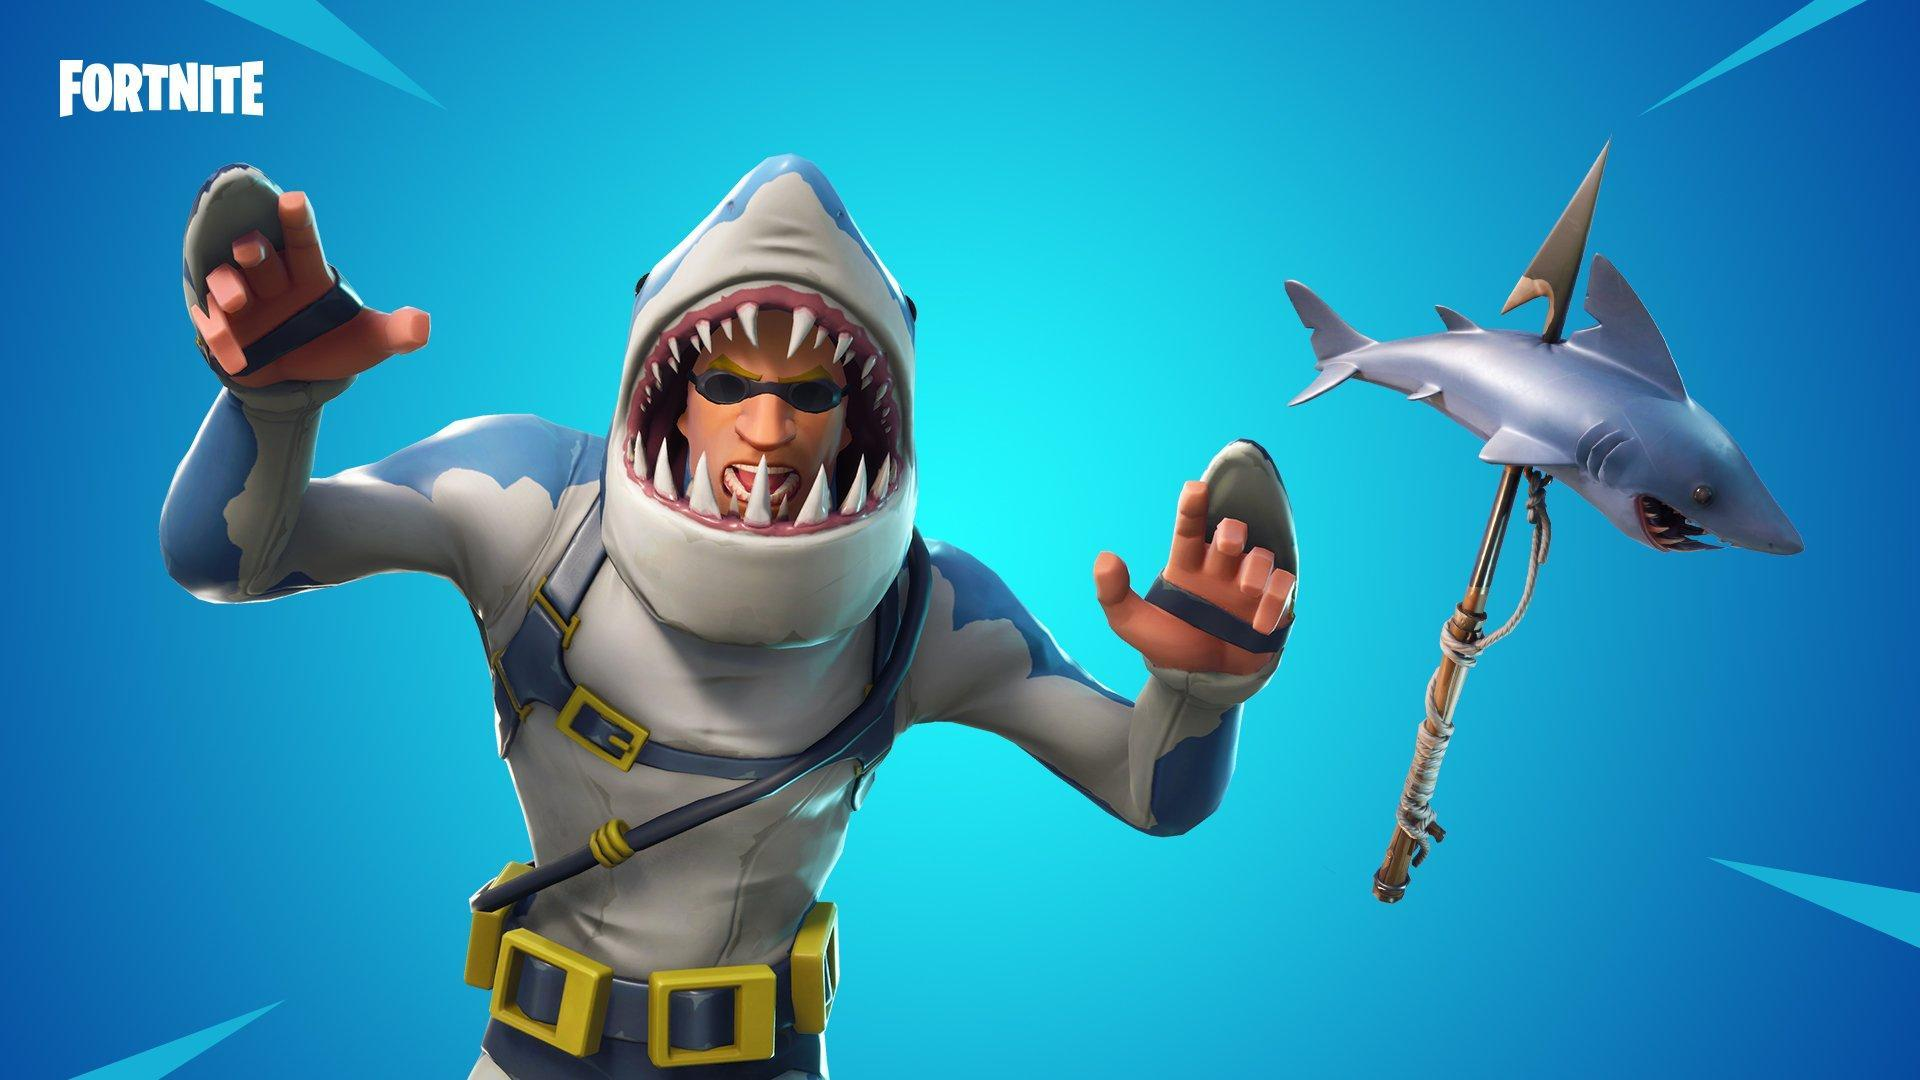 Check Out Fortnite's New Legendary Shark Skin: 'Chomp Sr'